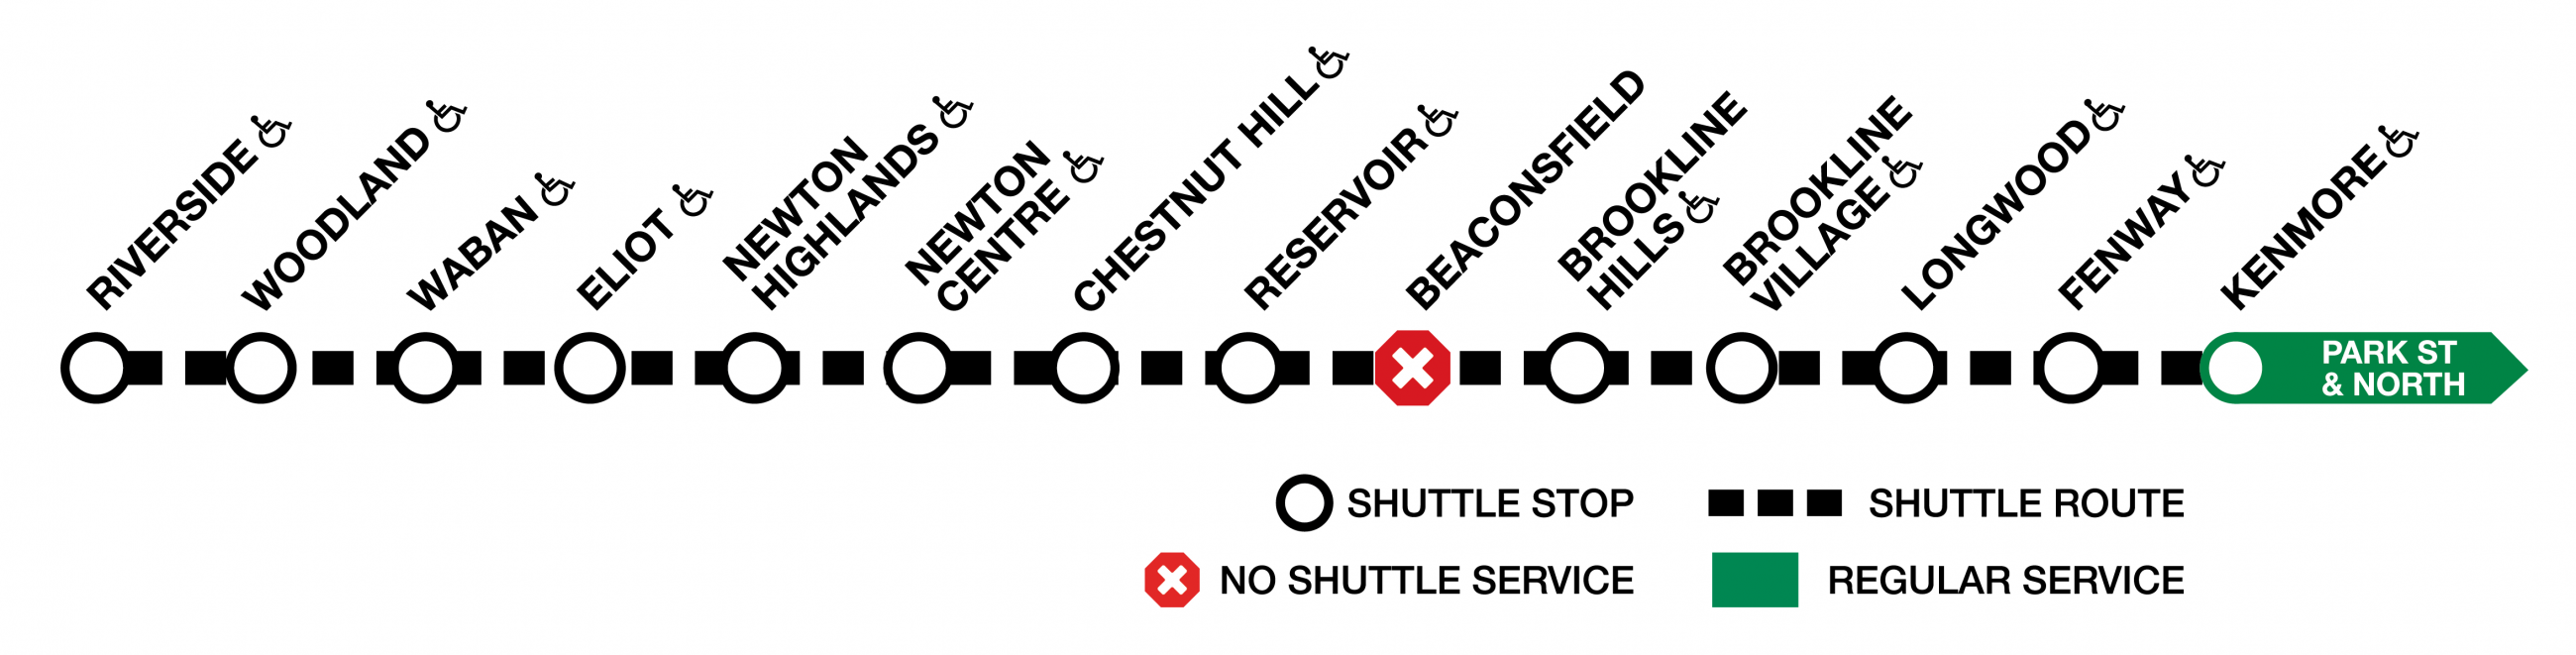 Green Line D diagram showing shuttle service between Riverside and Kenmore, with no service at Beaconsfield.